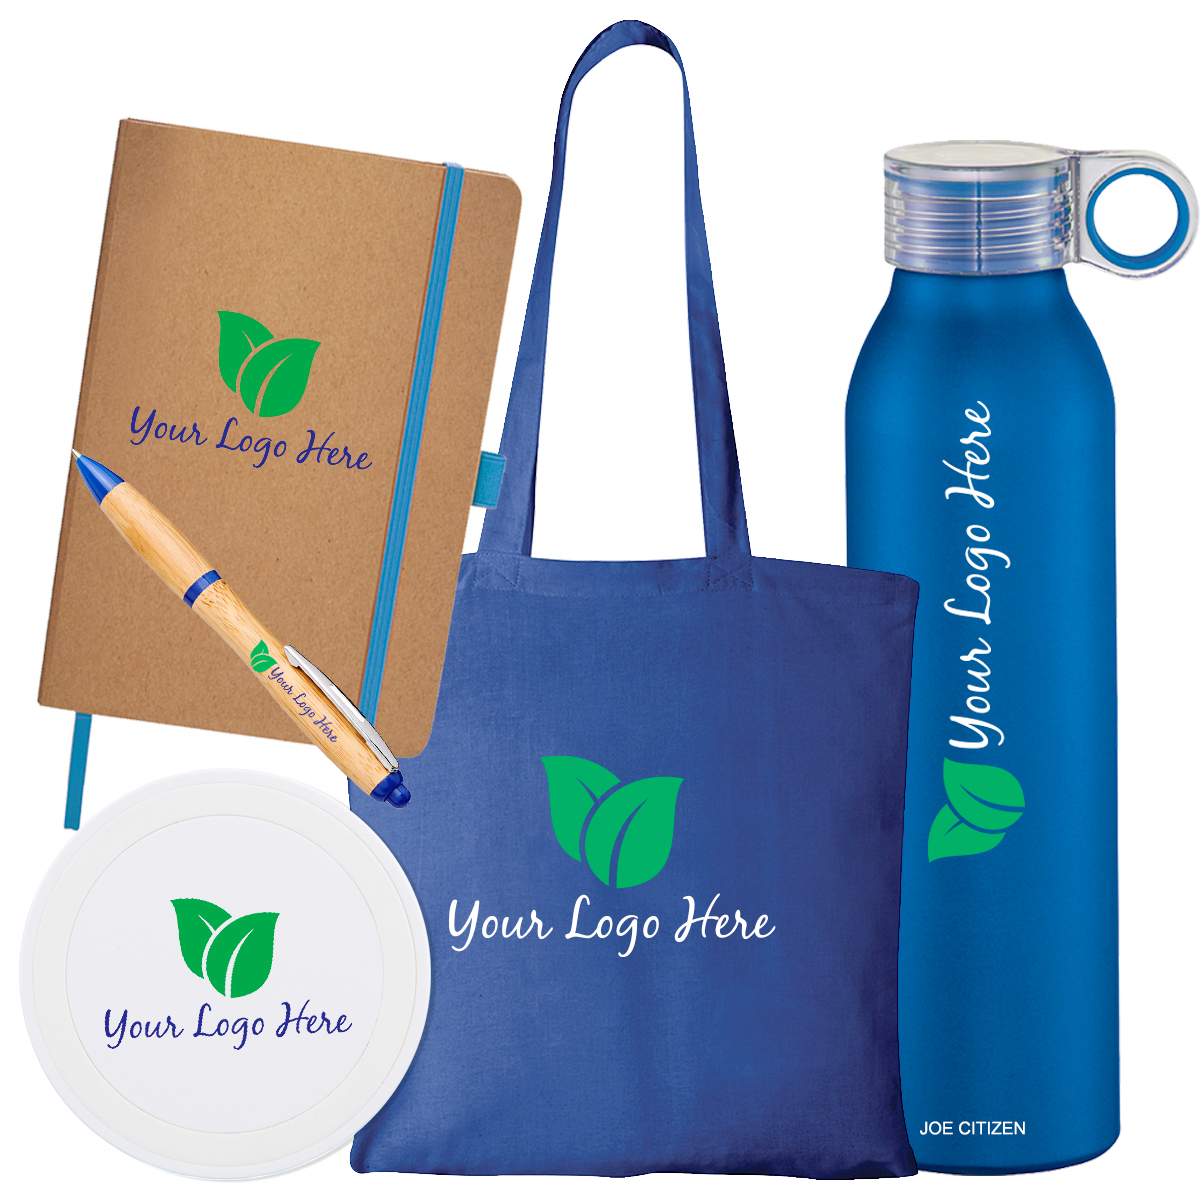 Promotional Work From Home Packs